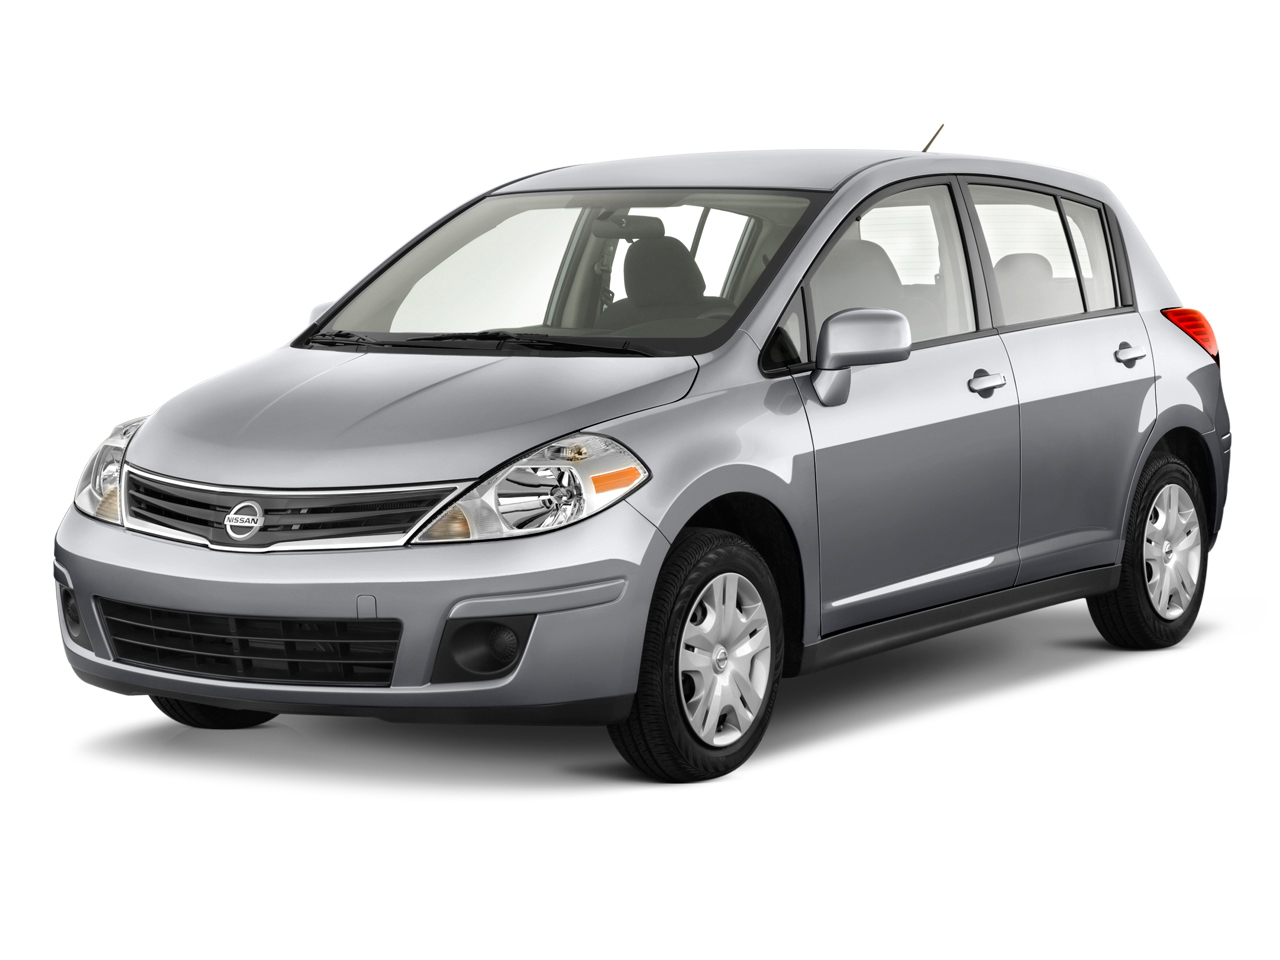 Mercedes Benz Fresno >> 2011 Nissan Versa Review, Ratings, Specs, Prices, and ...